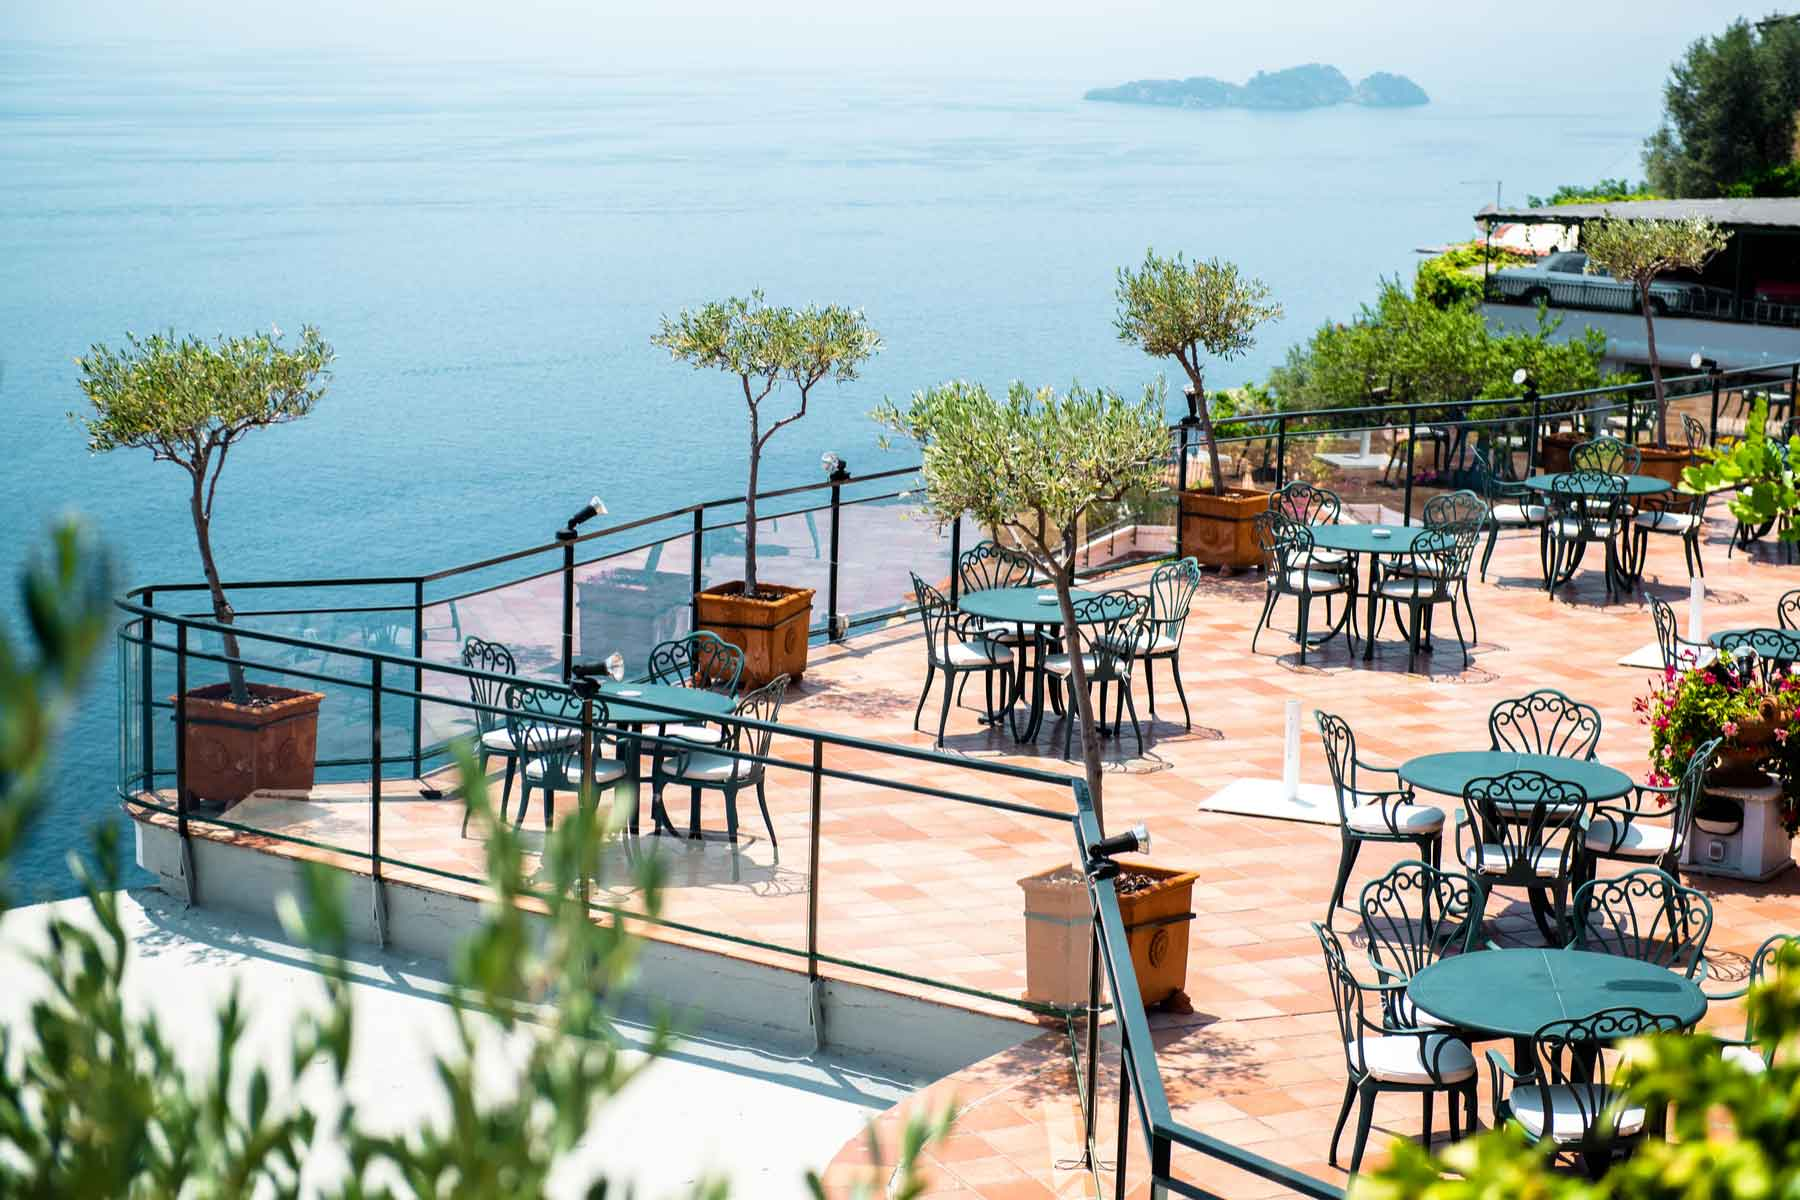 A restaurant overlooking the Tyrrhenian Sea